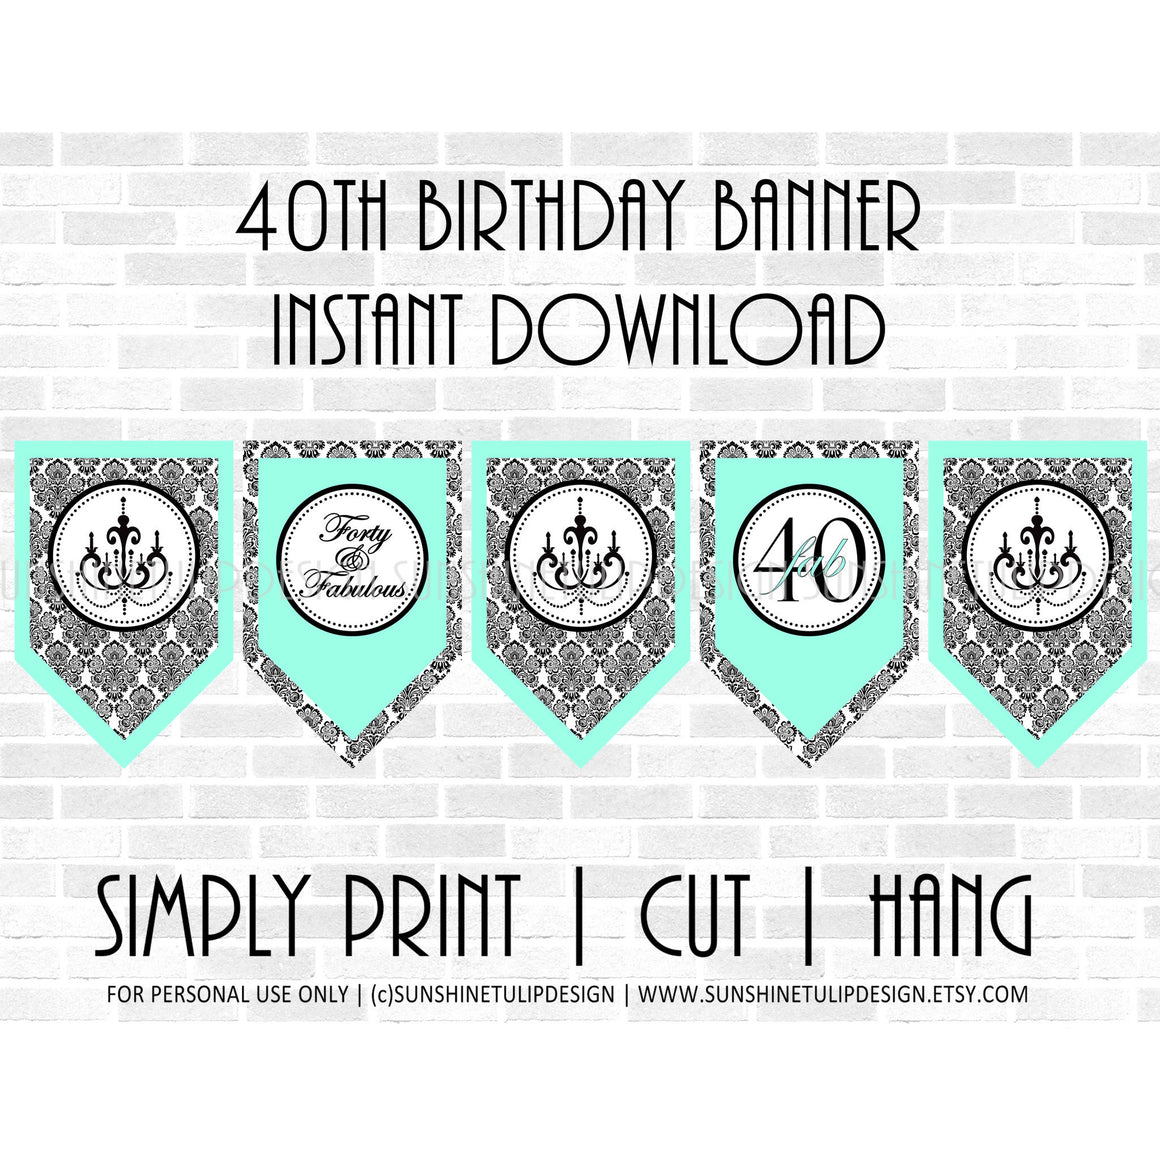 Printable 40th Birthday Aqua & Black Damask Banner - Sunshinetulipdesign - 1